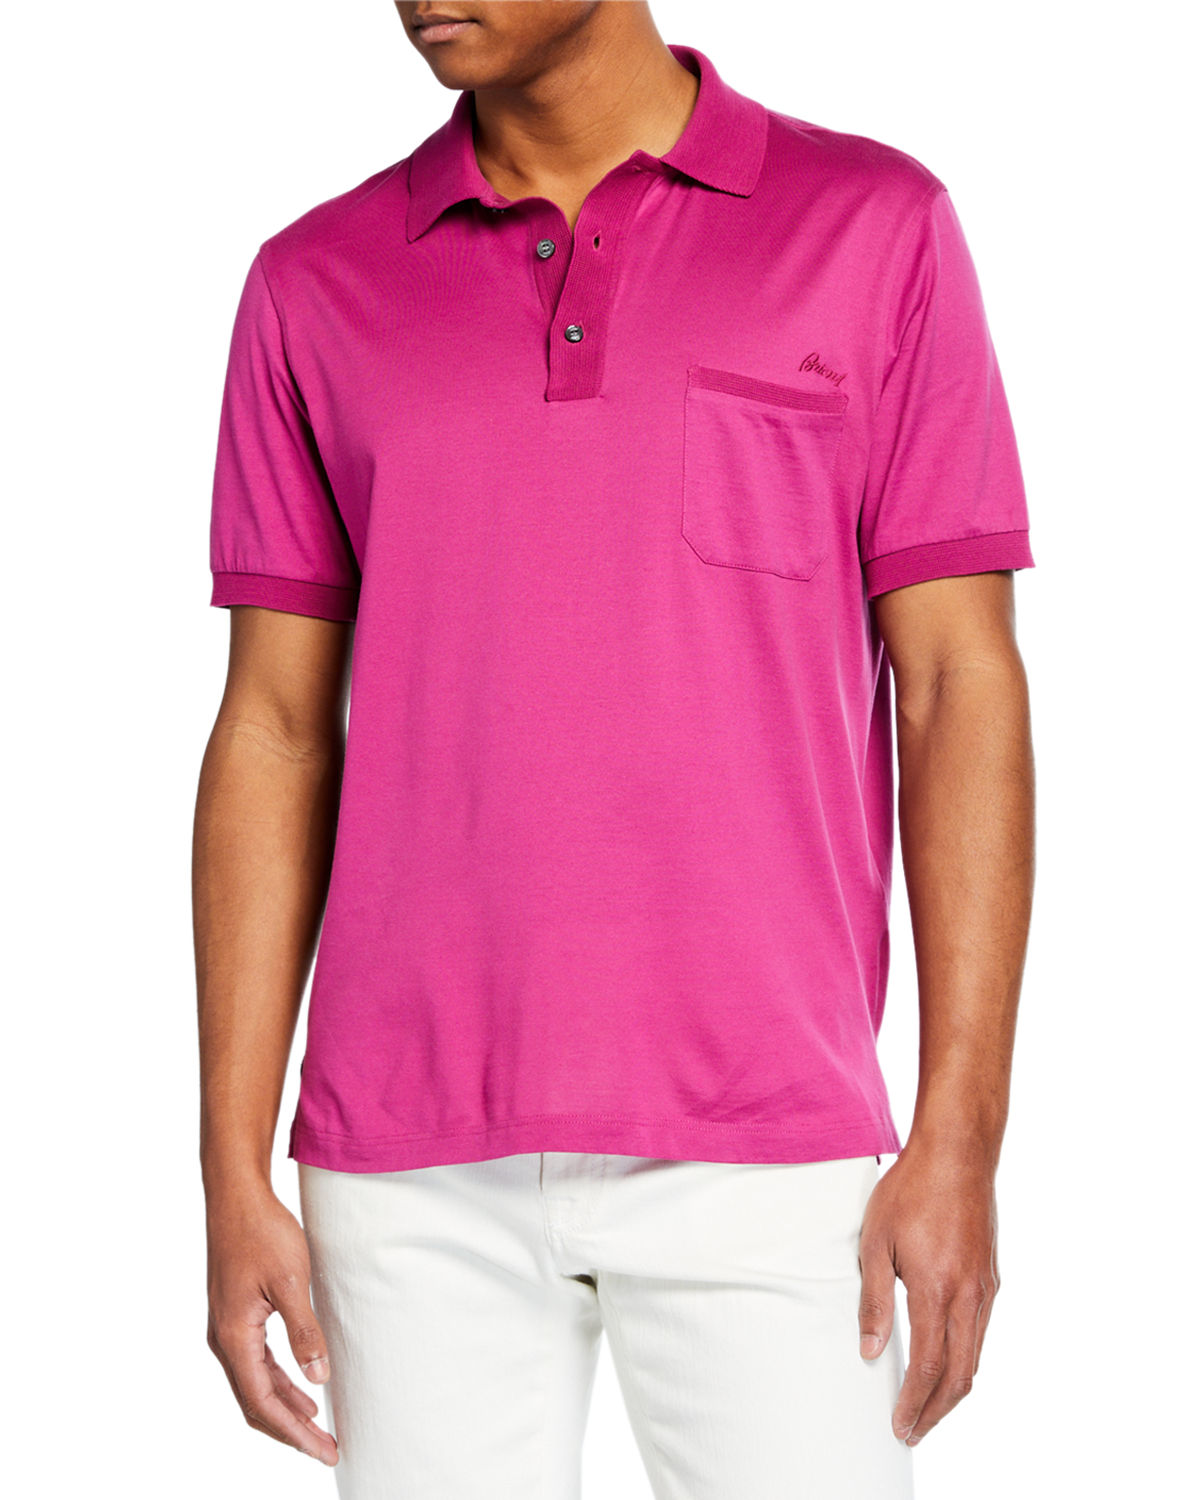 Brioni T-shirts MEN'S JERSEY POLO SHIRT WITH POCKET